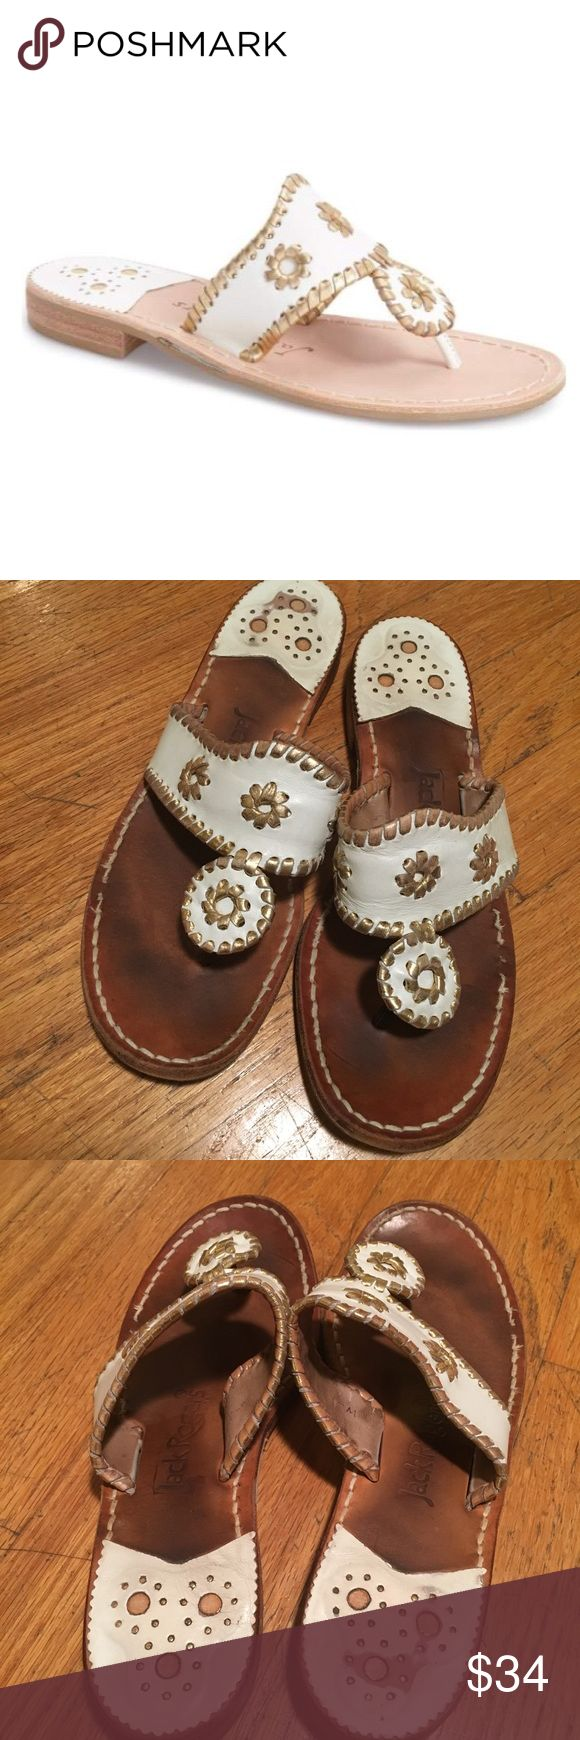 White and Gold Nantucket Jack Roger Sandals Good condition. Please note the wear. Make an offer! Jack Rogers Shoes Sandals